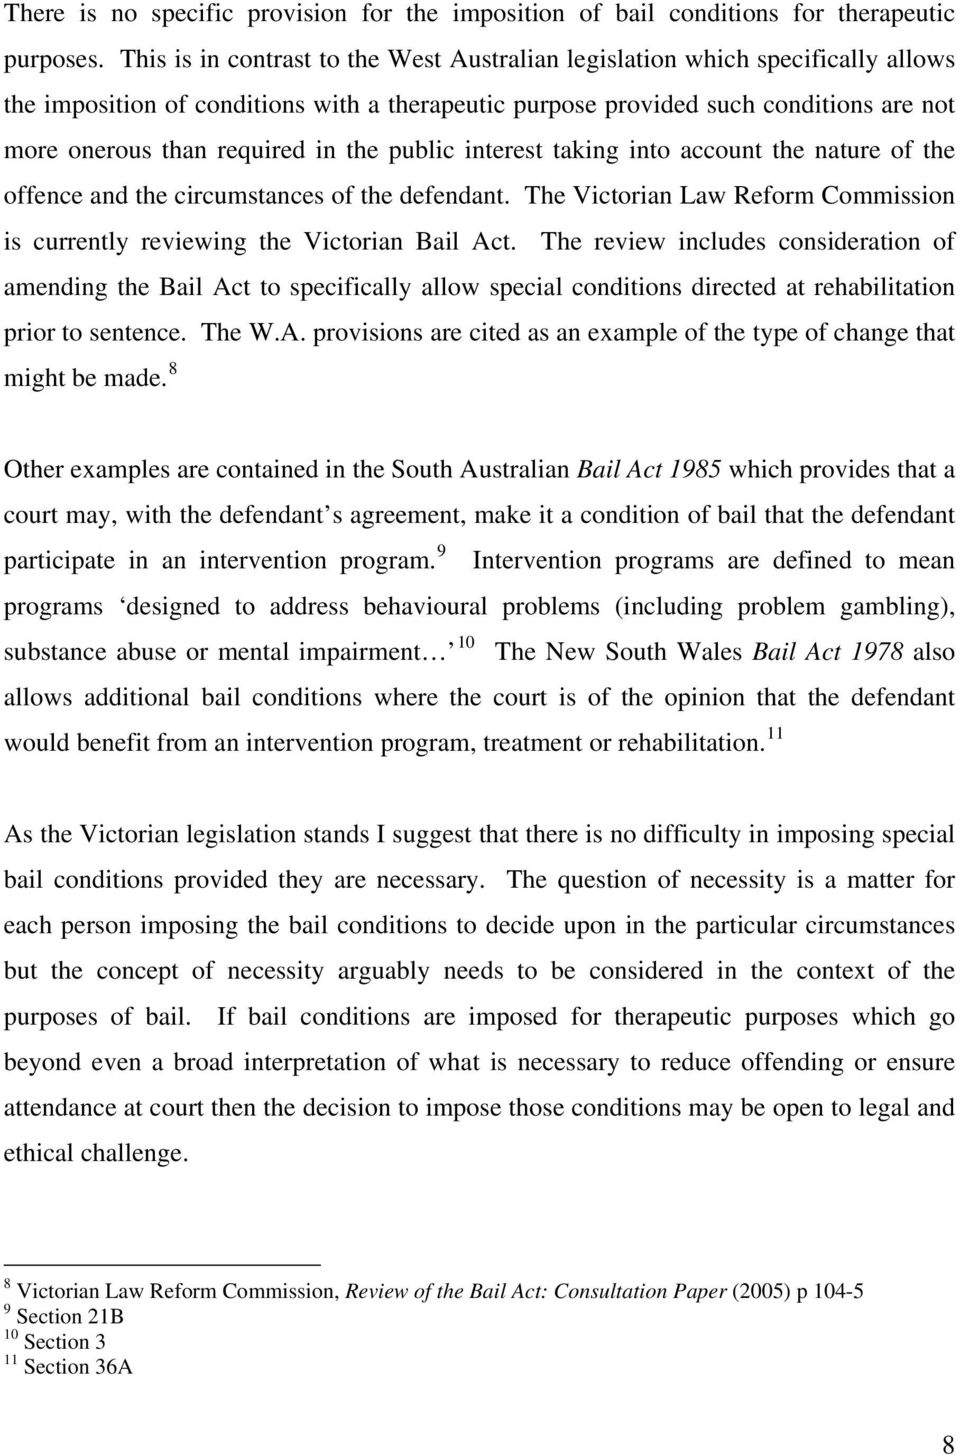 the public interest taking into account the nature of the offence and the circumstances of the defendant. The Victorian Law Reform Commission is currently reviewing the Victorian Bail Act.